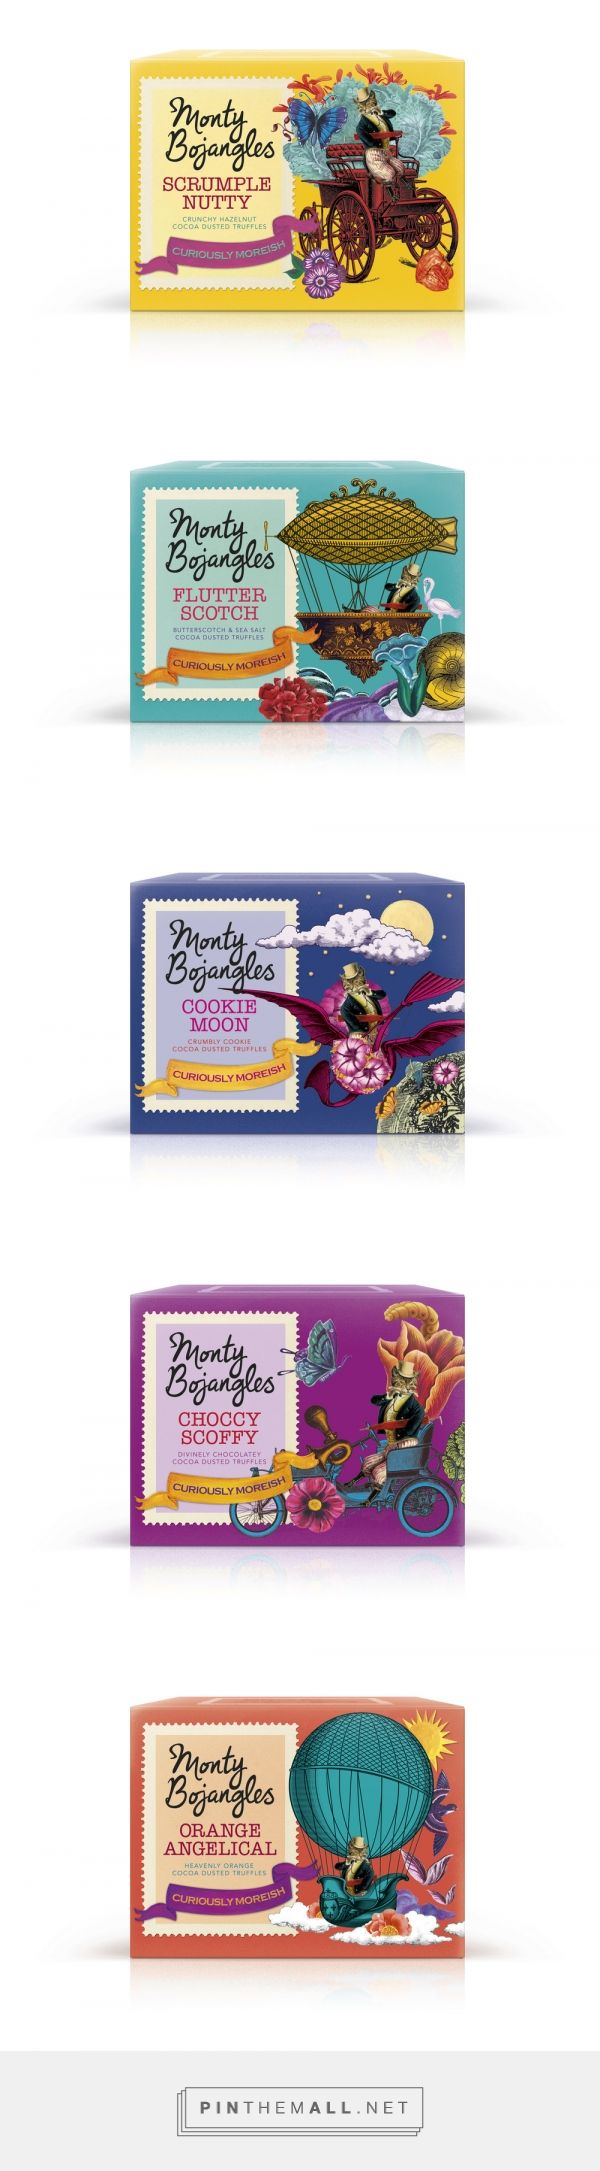 I love the colourful packaging for Monty Bojangles Truffles nearly as much as I love the truffles!